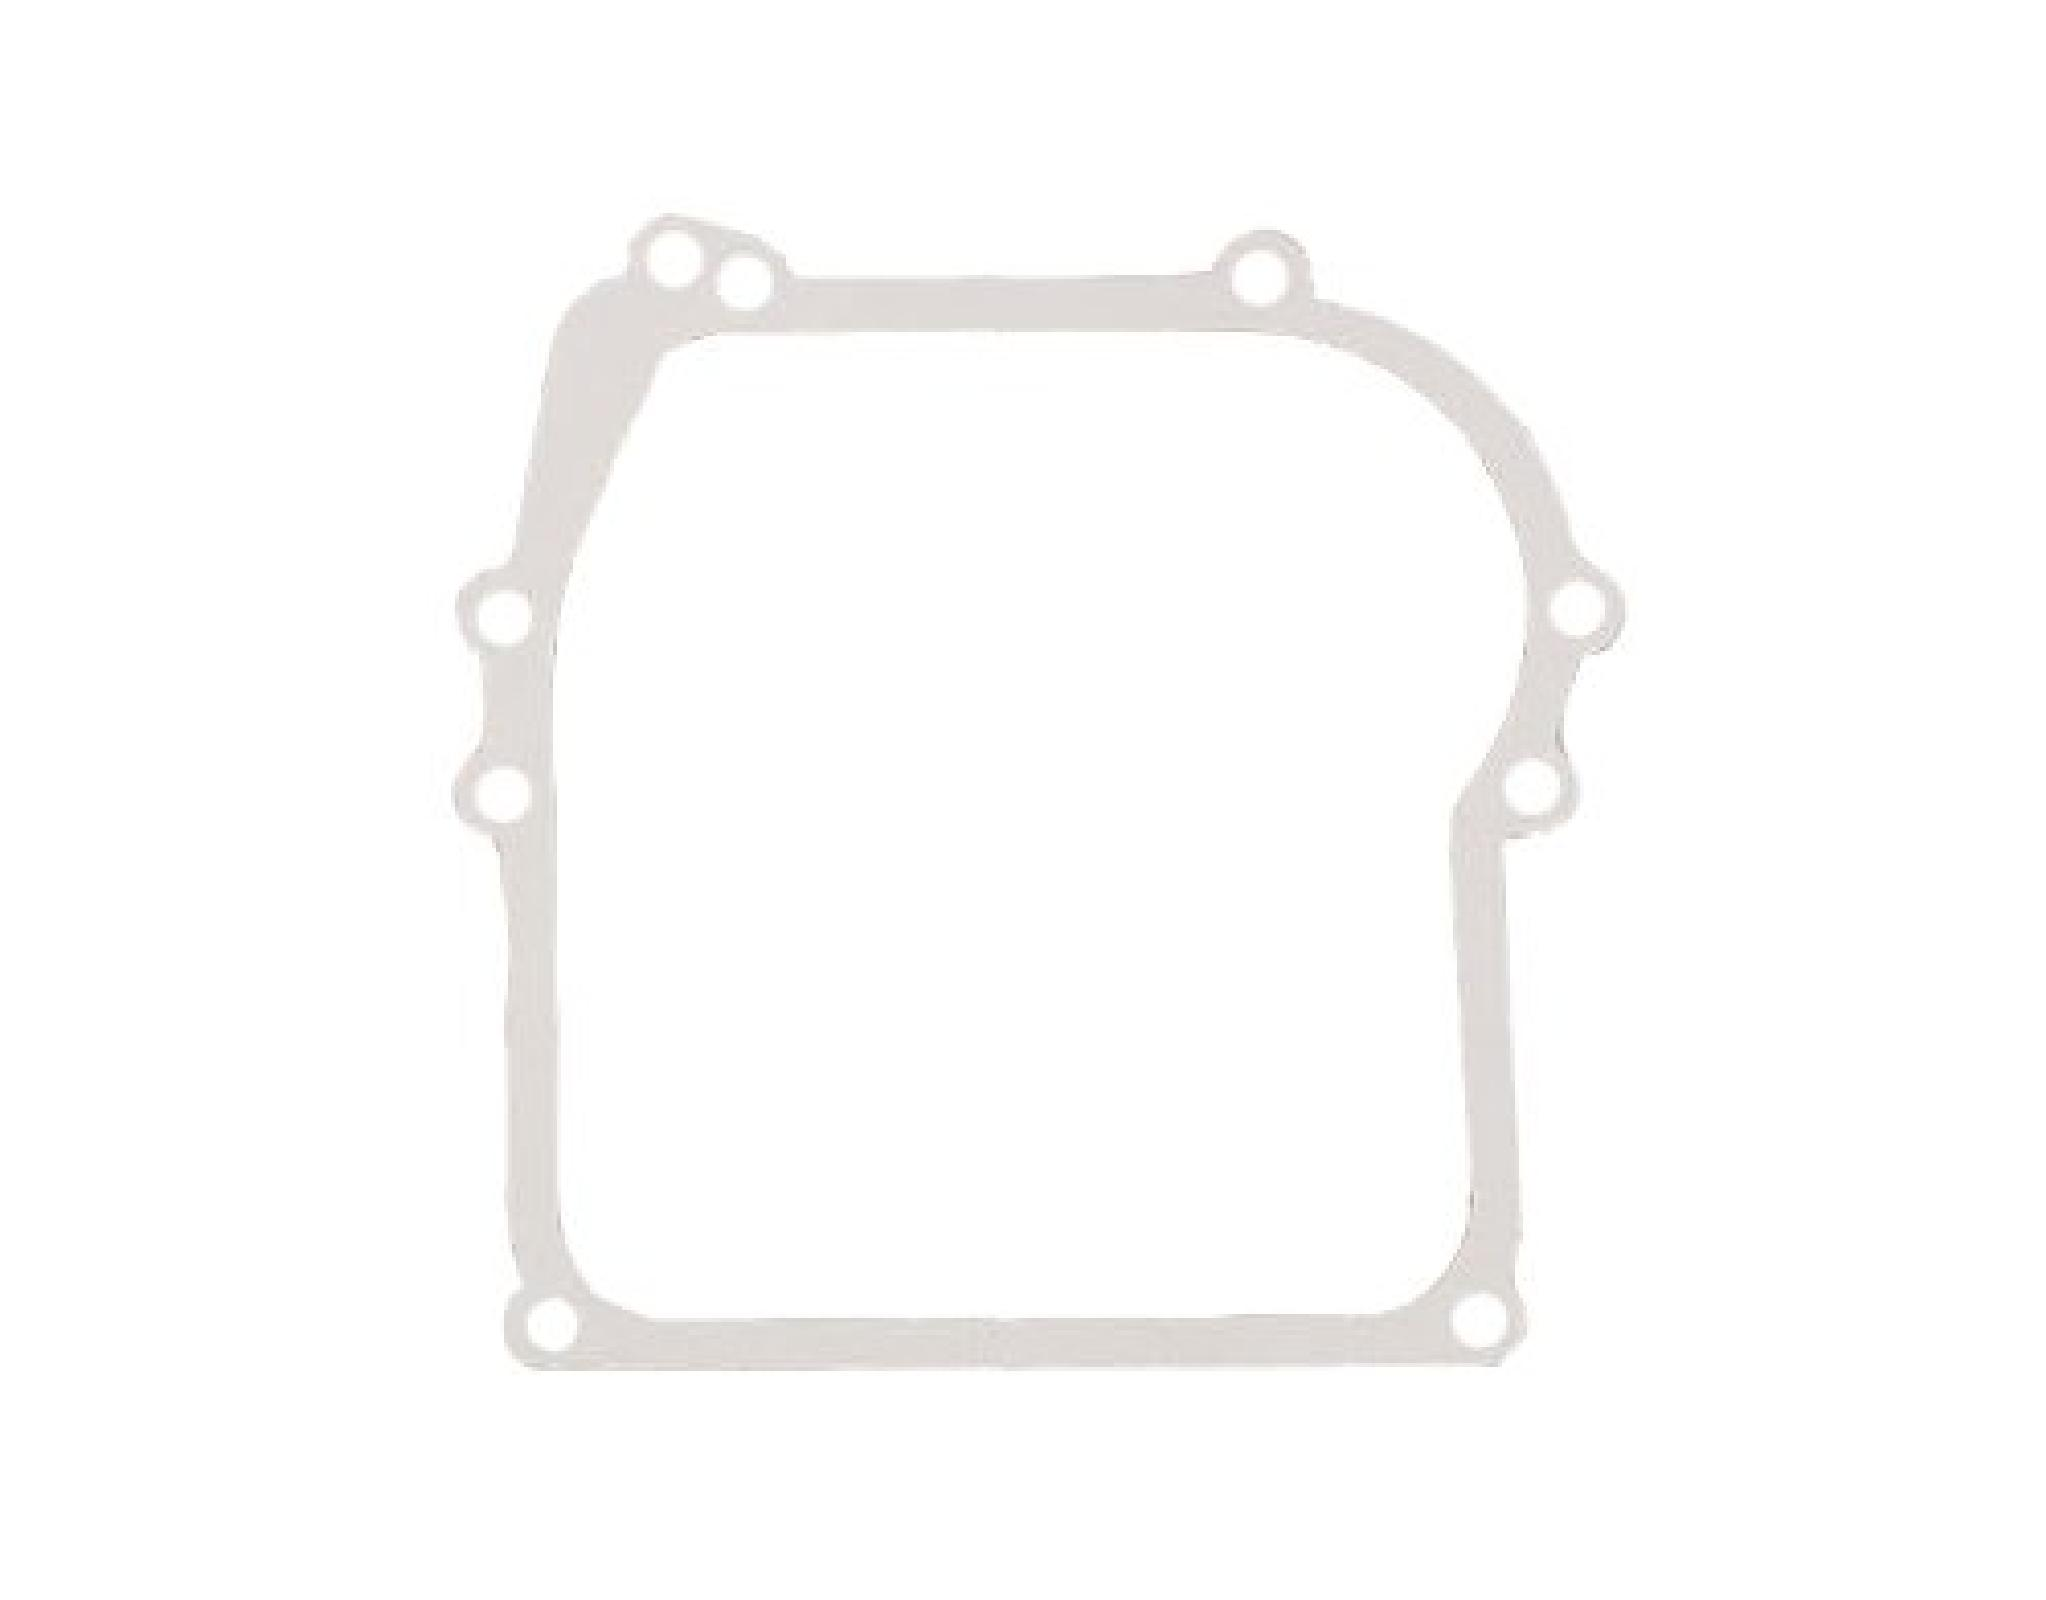 GASKET CRKCSE/005 part# 270895 by Briggs & Stratton